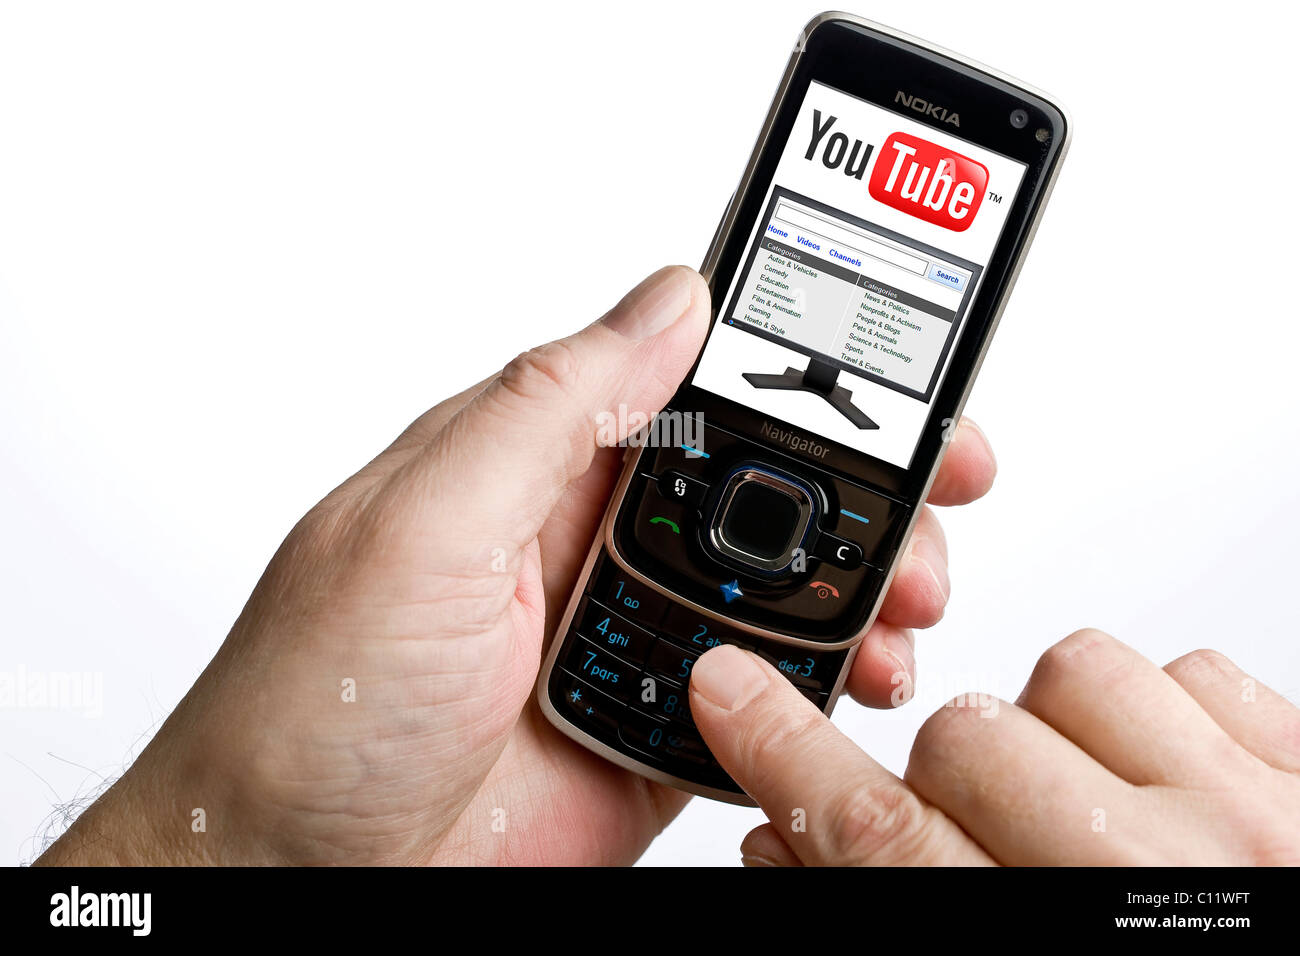 Using YouTube on a mobile phone Stock Photo: 35077388 - Alamy